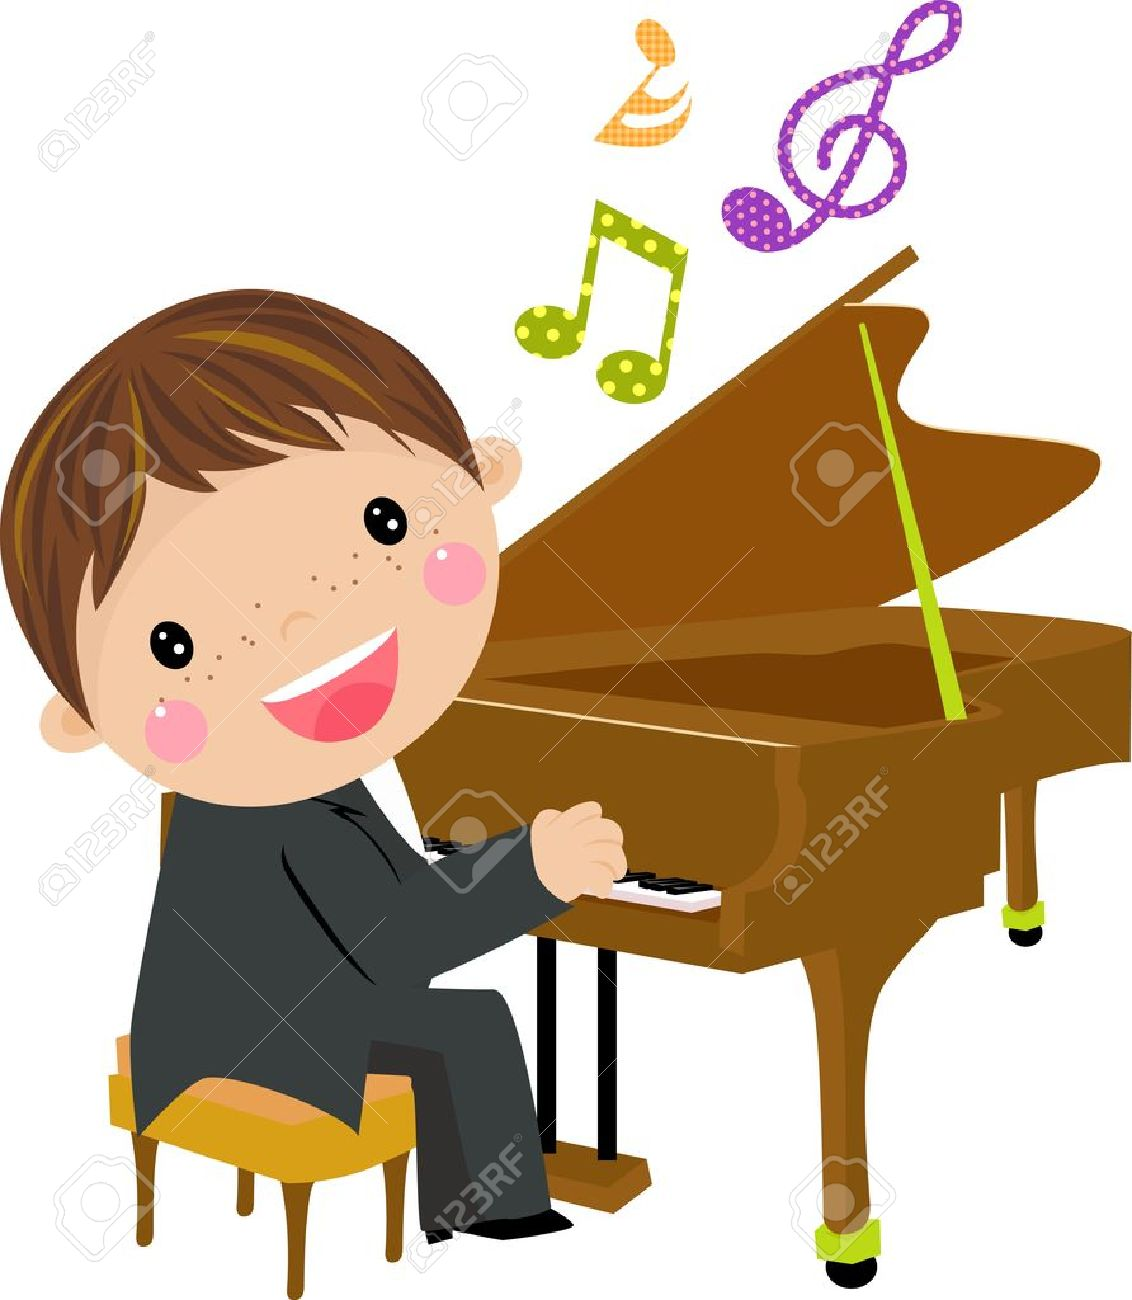 20,856 Piano Stock Vector Illustration And Royalty Free Piano Clipart.